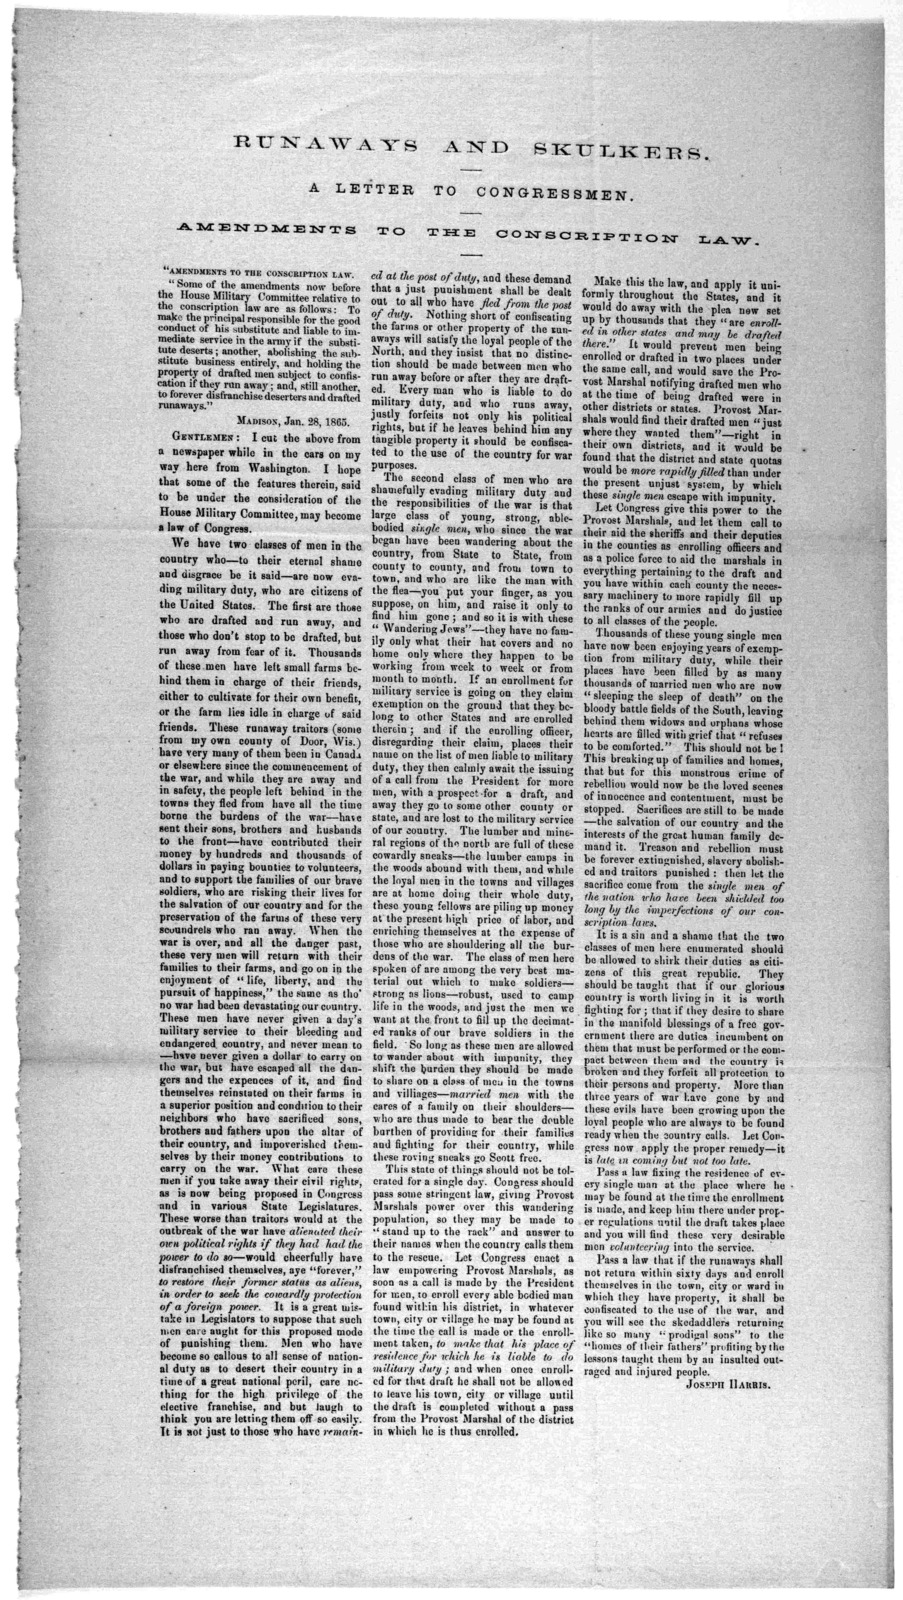 Runaways and skulkers. A letter to congressman. Amendments to the conscription law ... Madison, Jan 28, 1865.